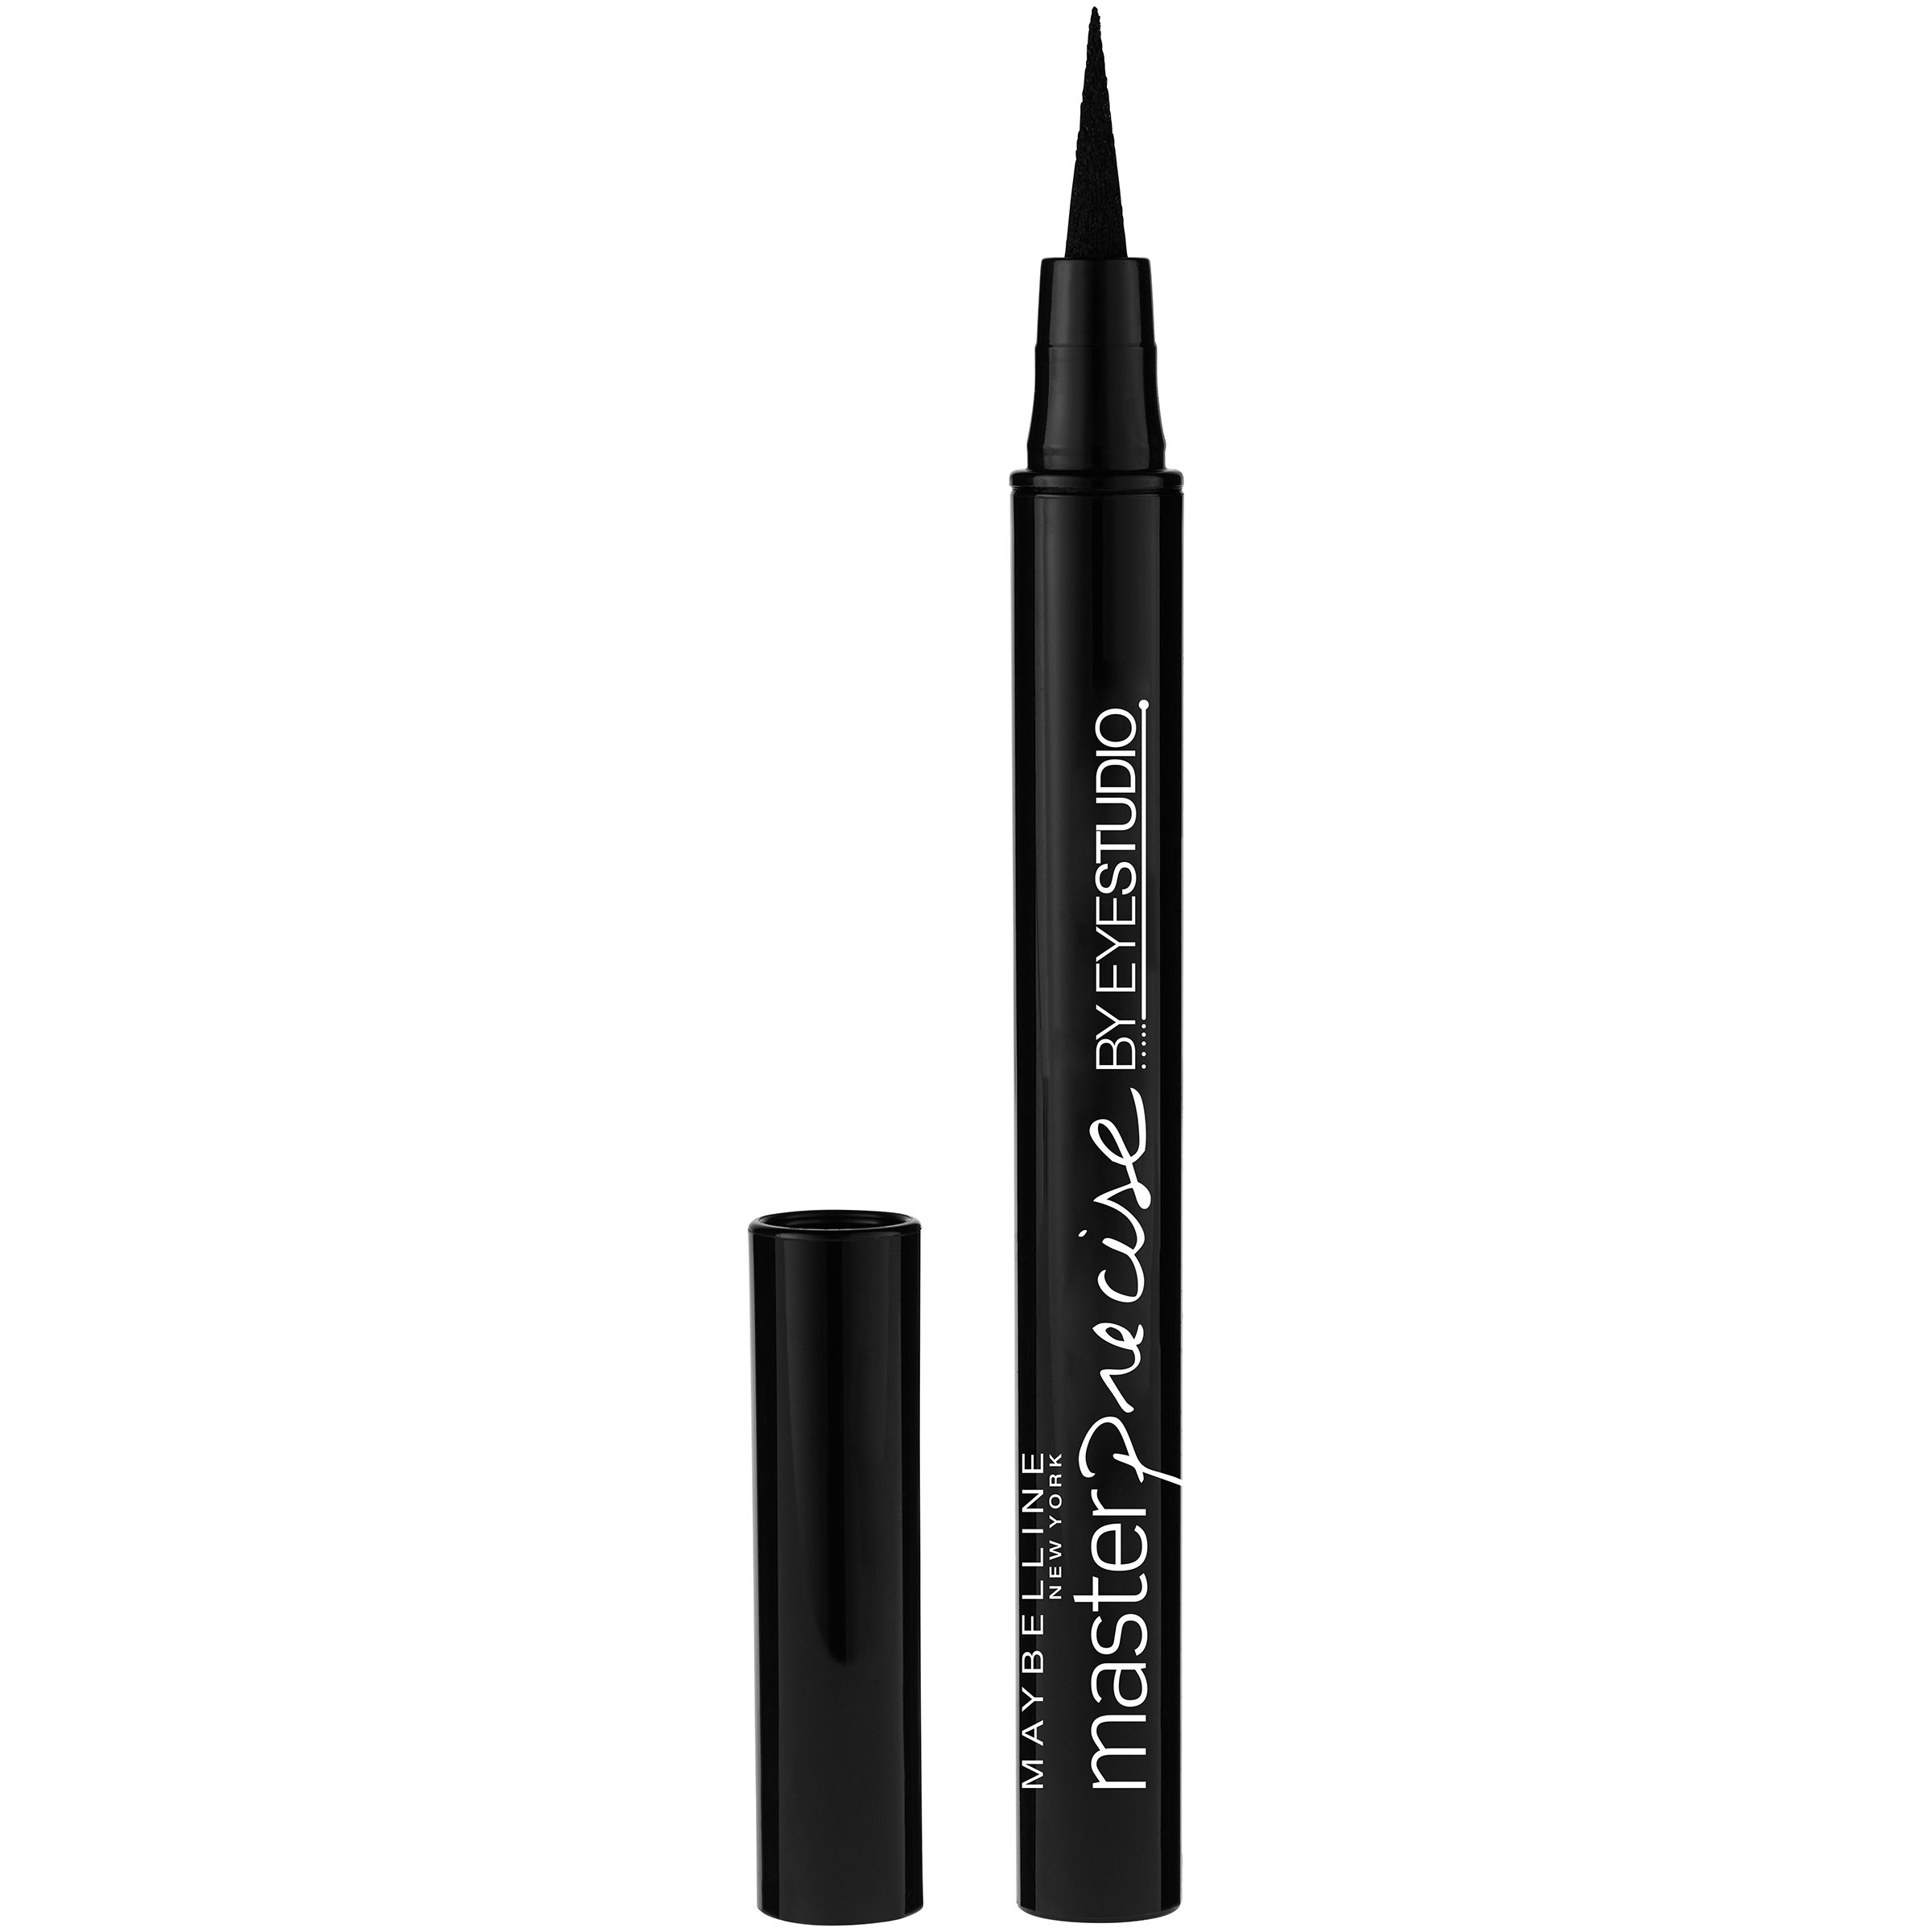 Maybelline Makeup Eyestudio Lasting Drama Gel Eye Liner, Blackest Black, Waterproof, 0.037 oz